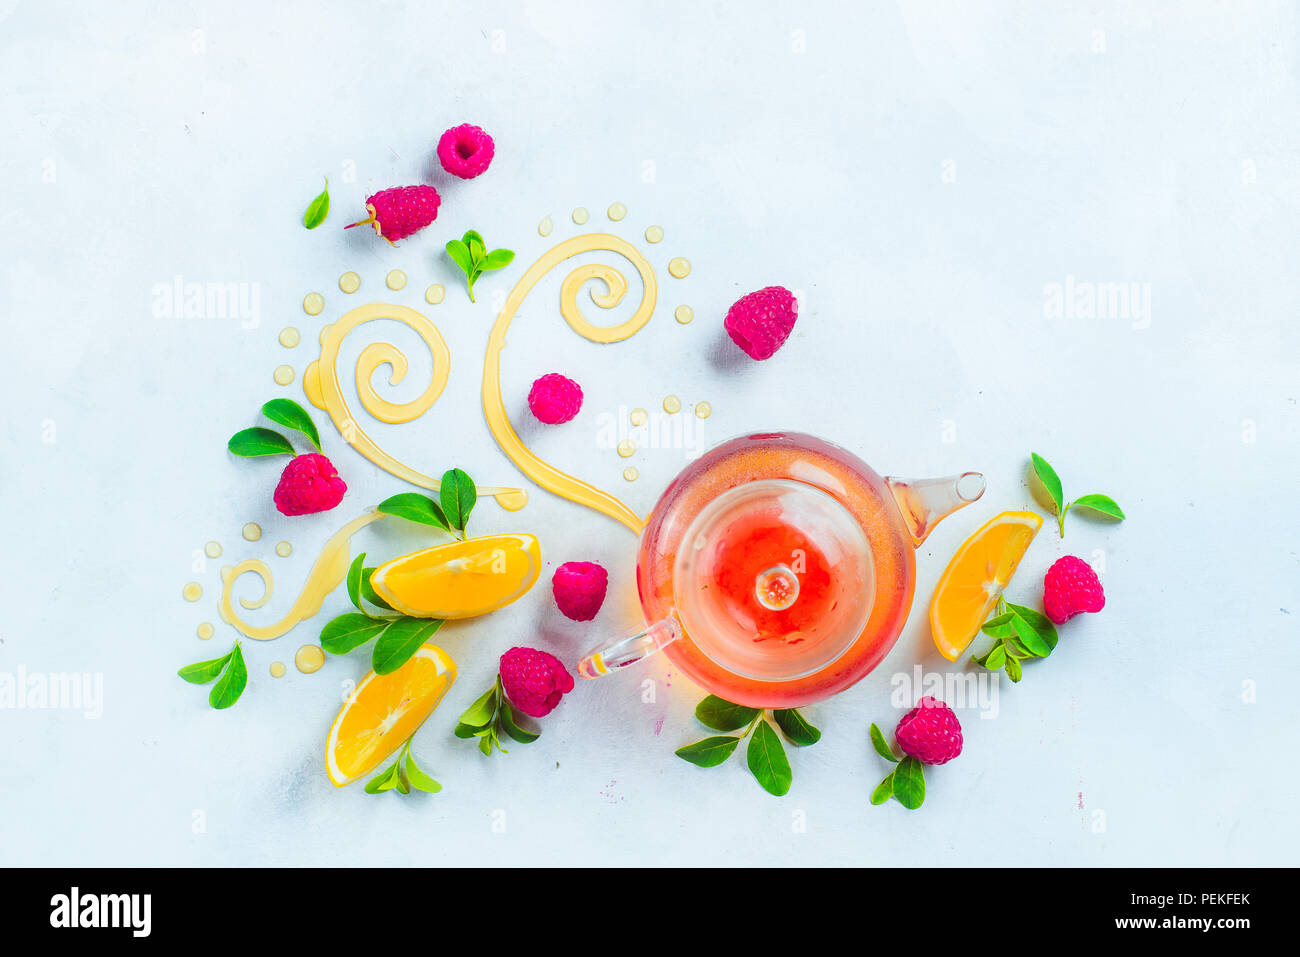 Honey and tea header. Glass teapot with decorative honey swirls, lemon slices and green leaves. Home remedies flat lay on a white background with copy - Stock Image